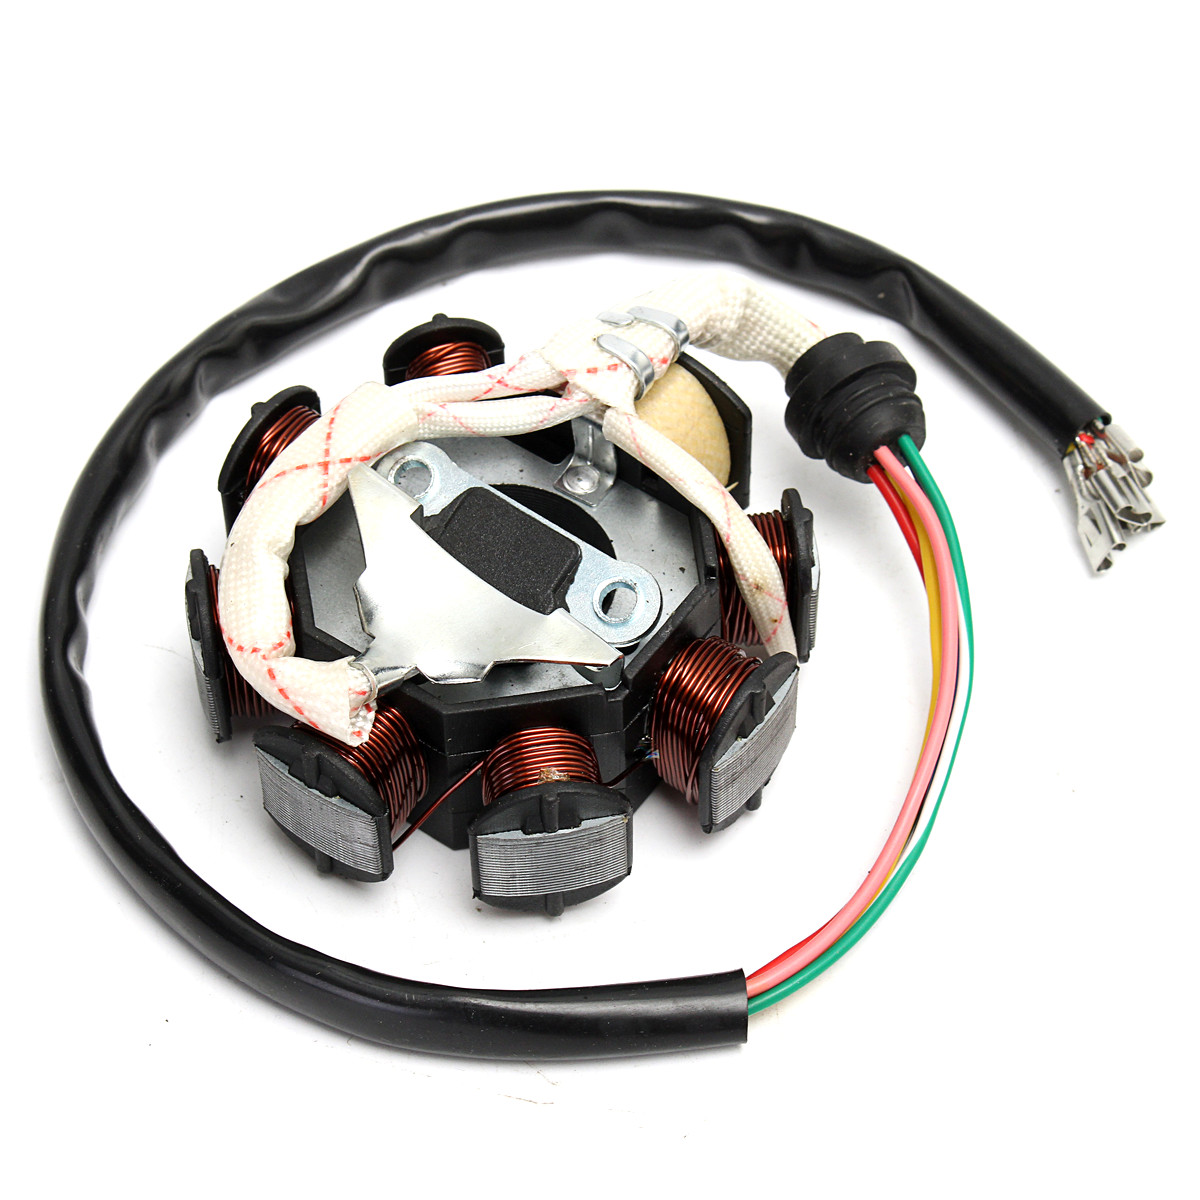 hight resolution of 1 x stator motor magneto generator charging coil 8 pole 5 wires 3 fixing holes